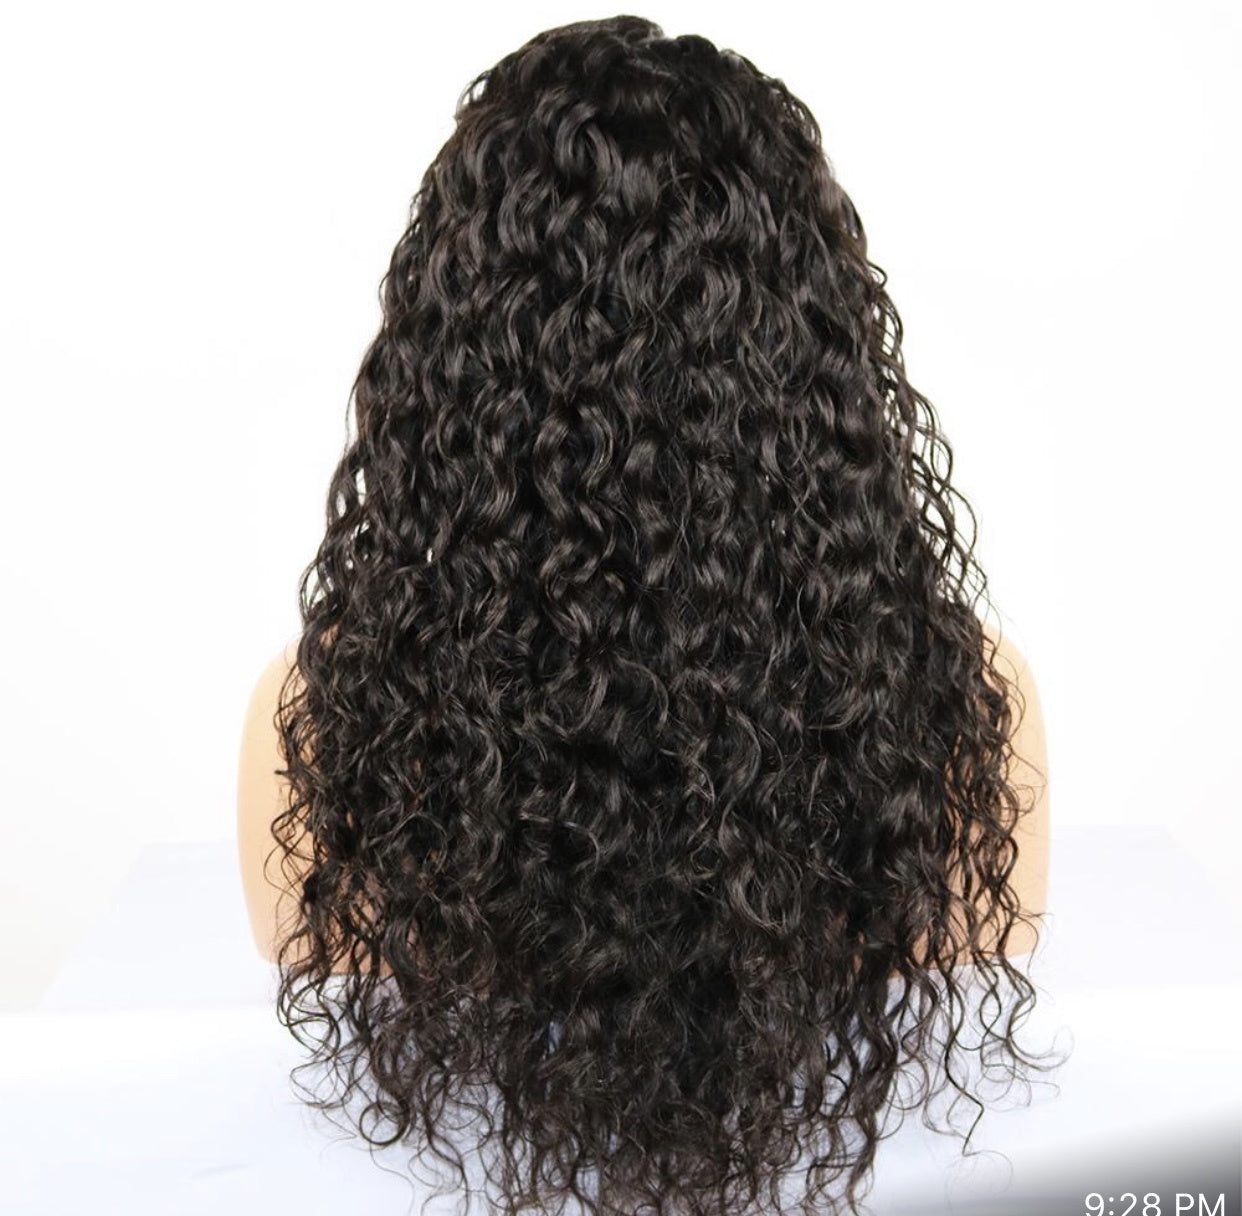 "22"" 13x6 Frontal Lace Wig - Loose Curly"